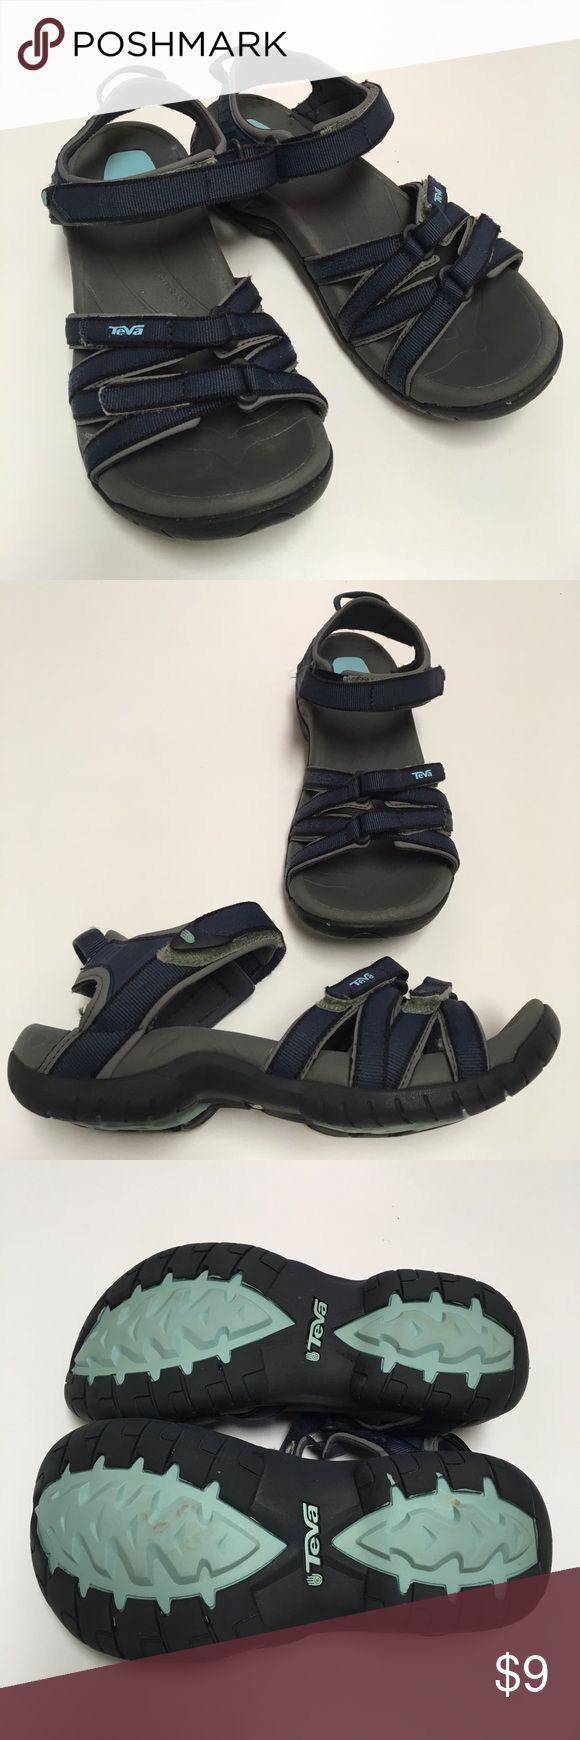 Teva Tirra Women's Active Sandals Hiking, Camping Size 8.5?  That's my size 9.5 foot in sandal. Price low because of condition issues. See pictures. I took pictures of all the flaws. Loosing the grey coating on the back of one shoe. Scuff in rubber by toes. Has some fuzzing of straps where Velcro rubbed it. Tips of straps were glued down. They don't come stitched all the way to the tip when you buy them. Super comfortable. Lost size tag. Teva Shoes Sandals